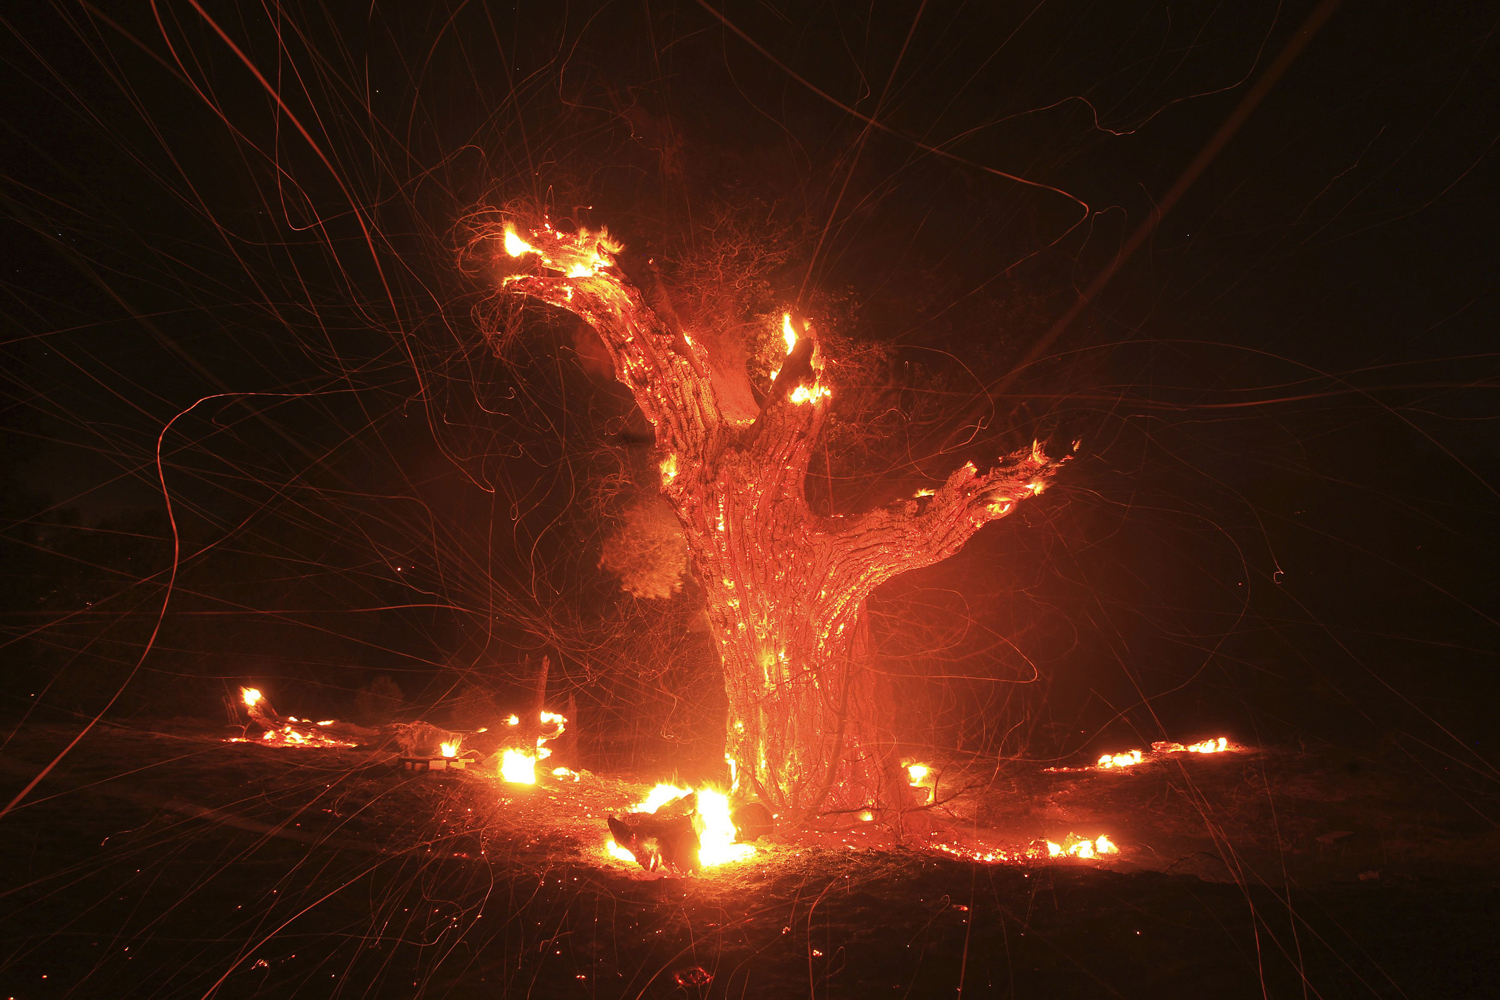 August 7, 2013. Wind-blown embers fly from an ancient oak tree that burned in the Silver Fire near Banning, Calif.